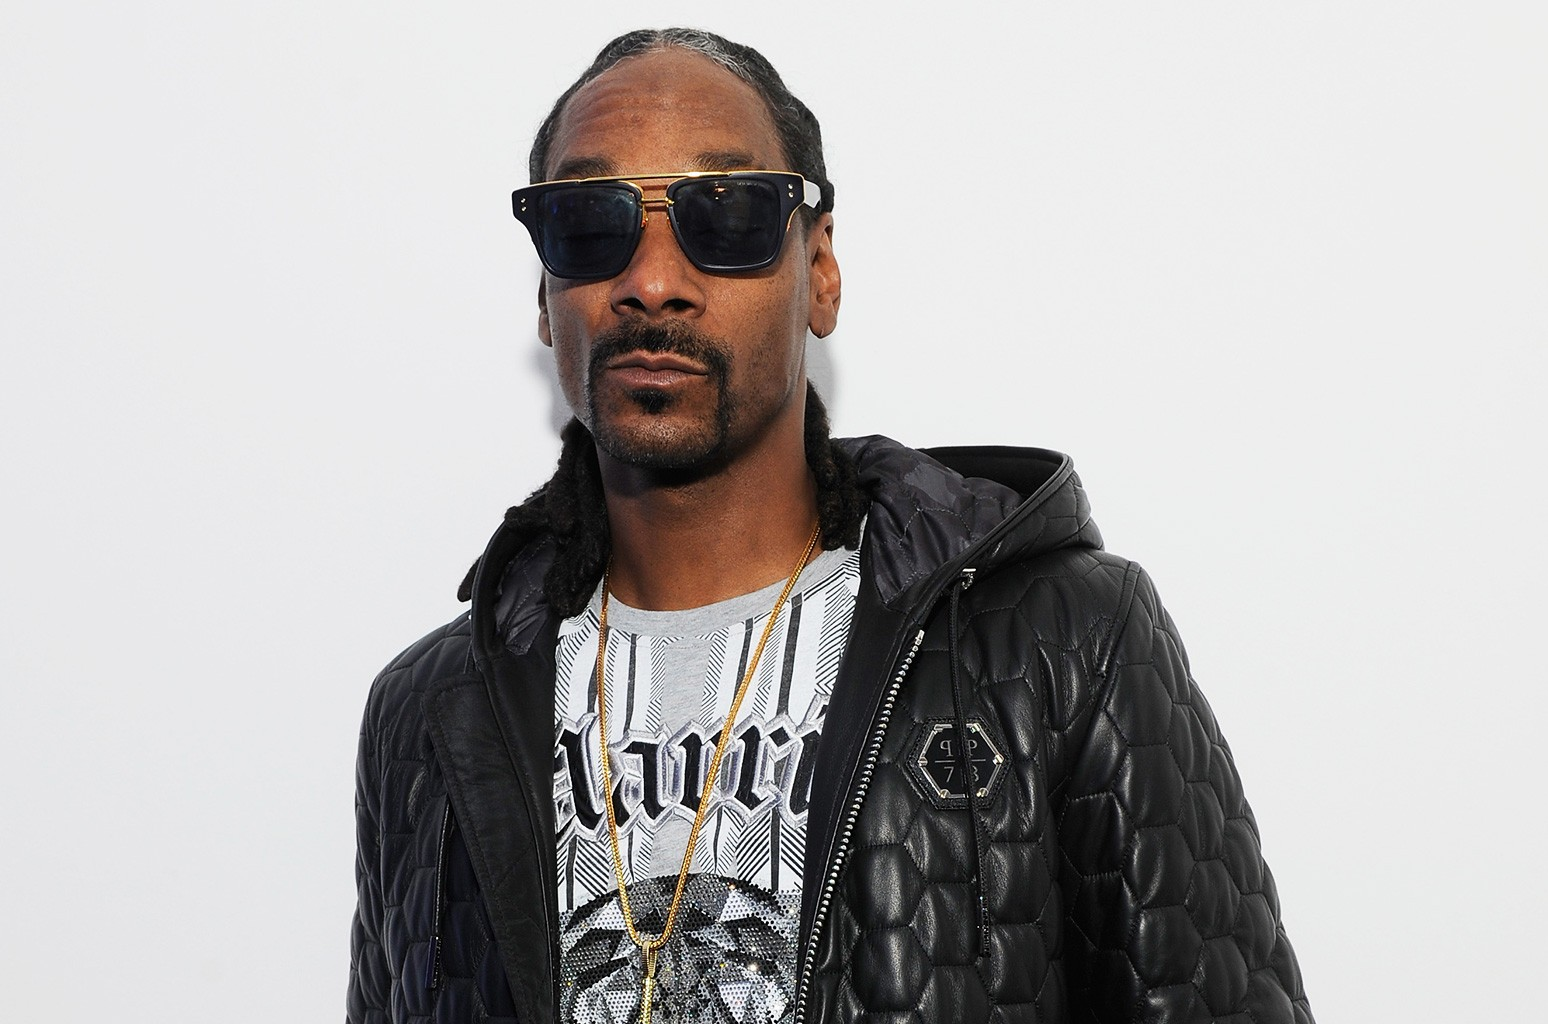 Snoop Dogg pose in backstage of the Philipp Plein Show as a part of Milan Menswear Fashion Week Fall Winter 2015/2016 on Jan. 17, 2015 in Milan, Italy.